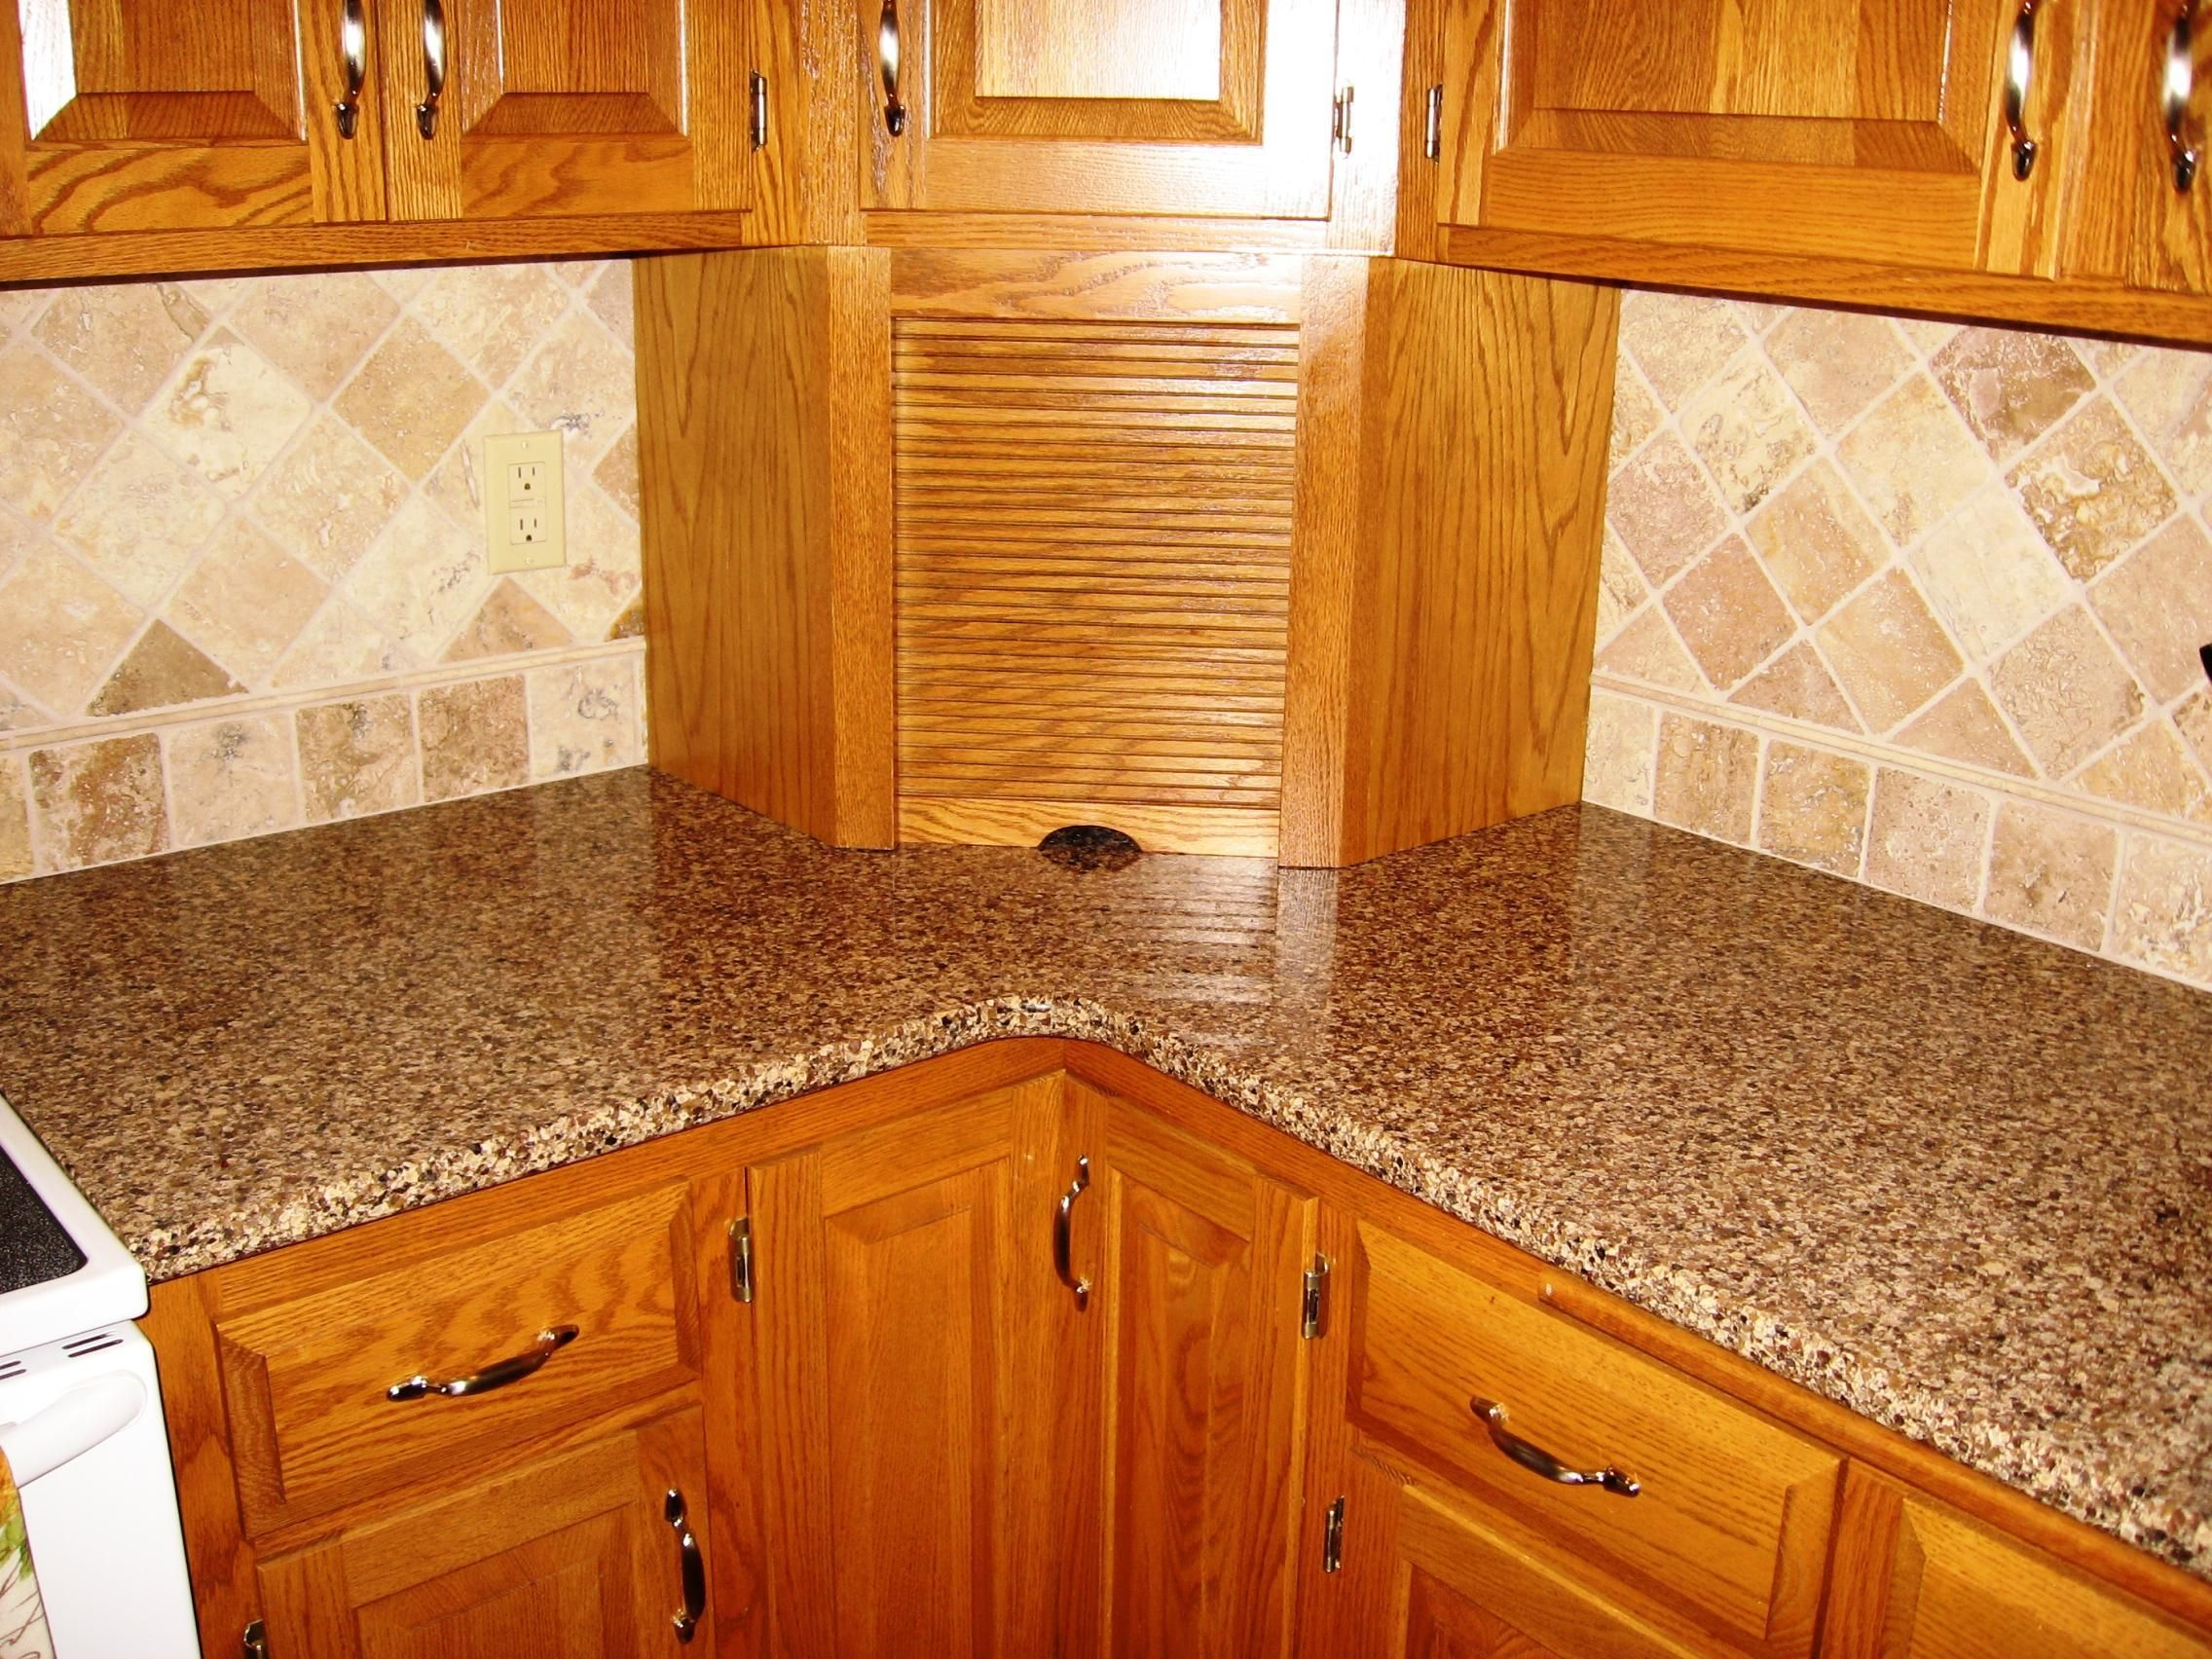 Modern Kitchen Design With Quartz Granite Countertop On